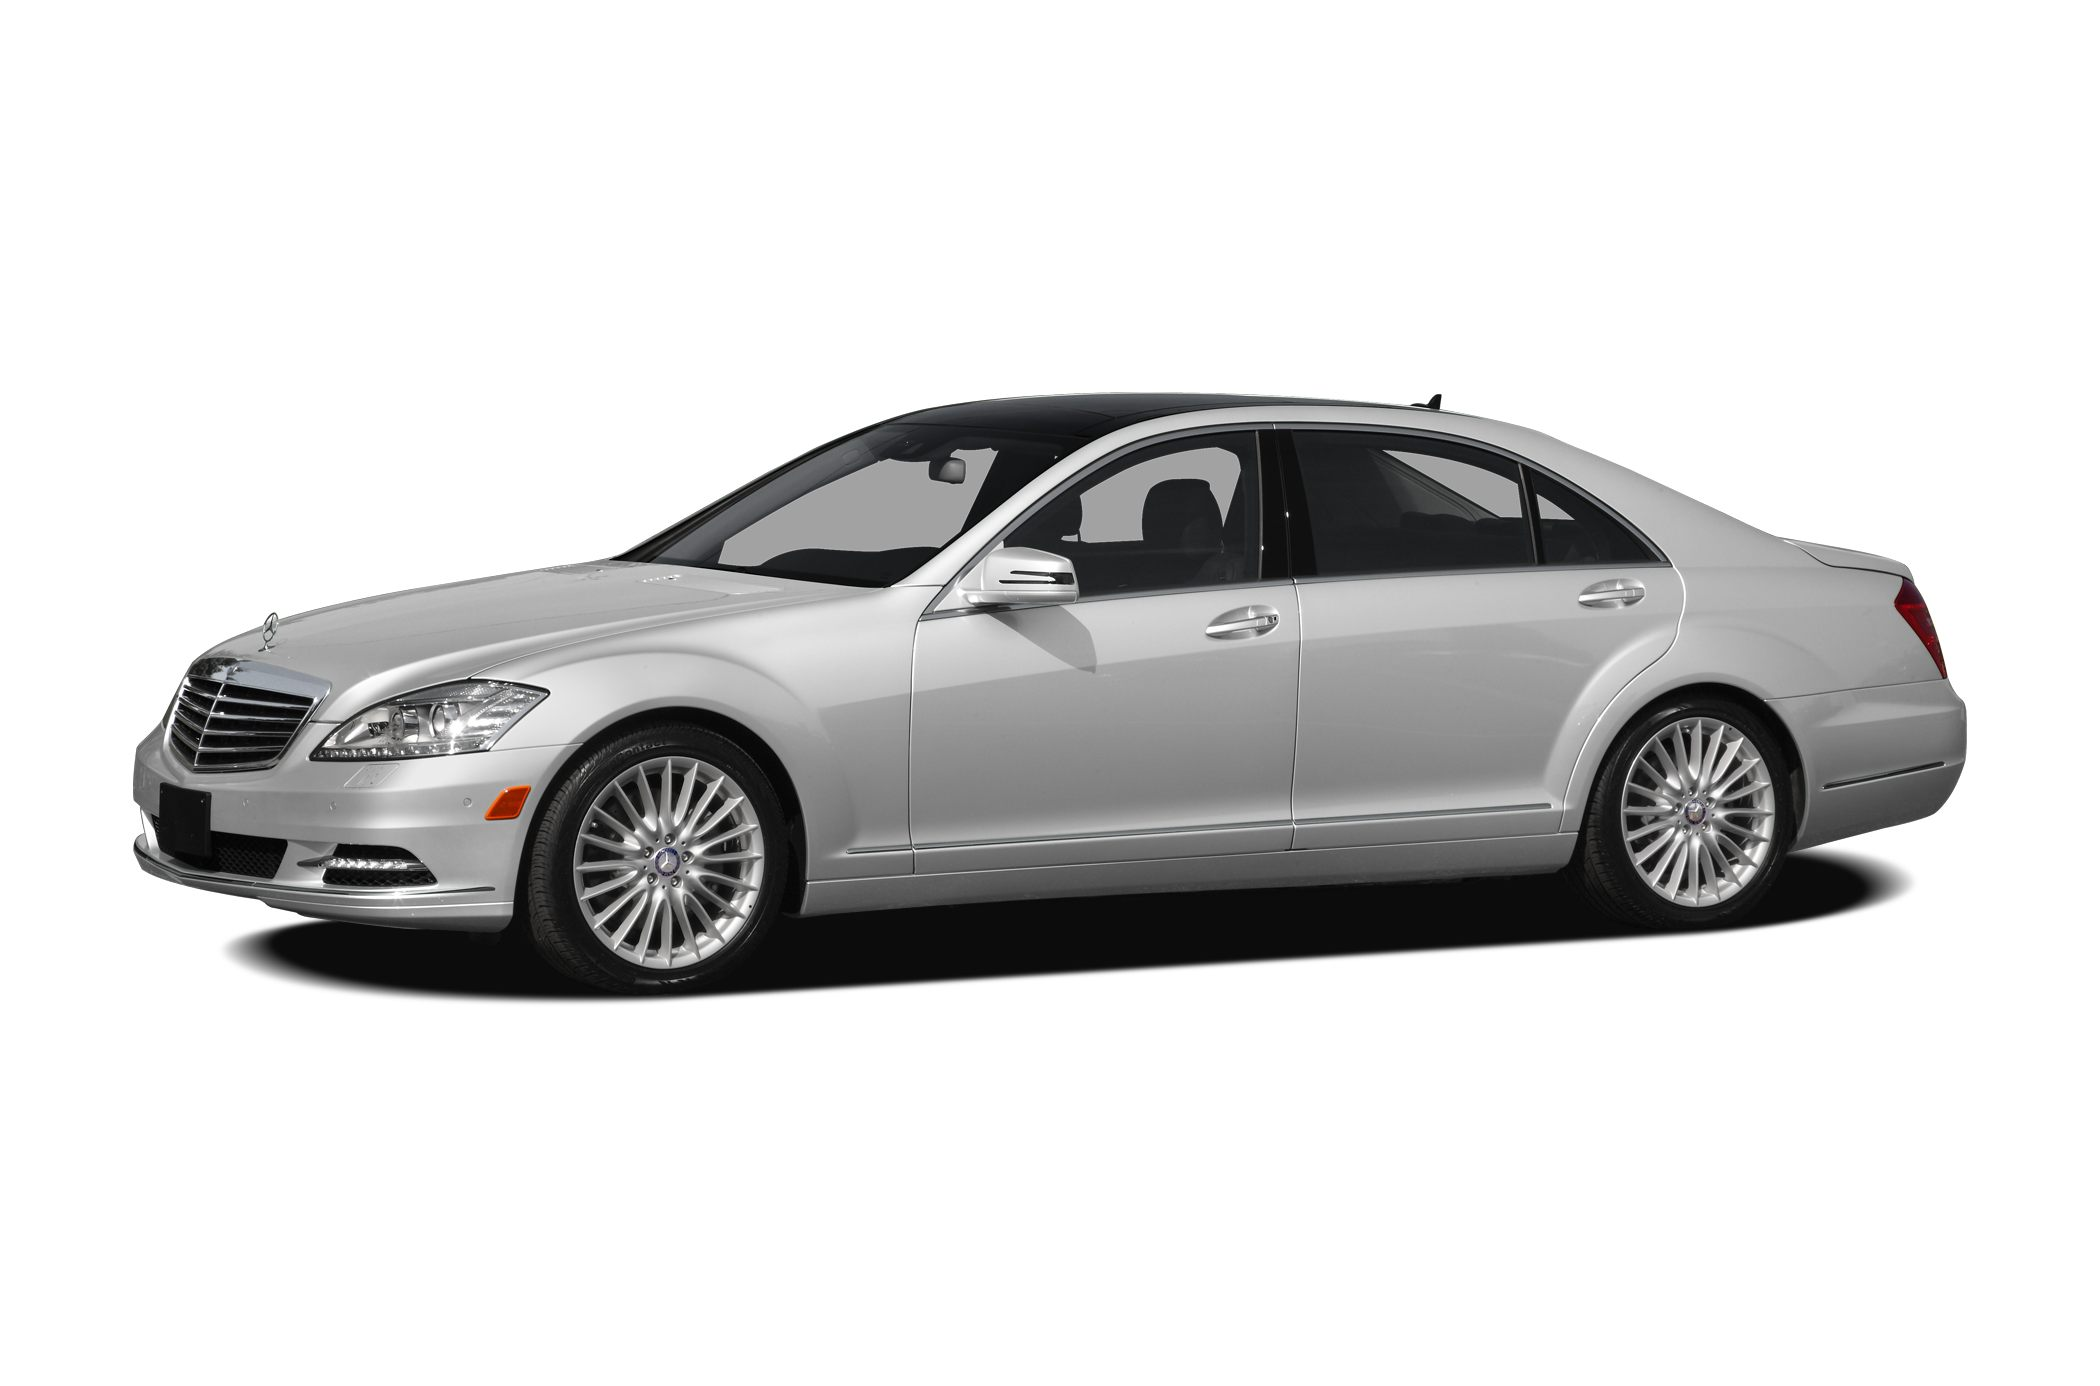 2012 Mercedes-Benz S-Class S550 Sedan for sale in Newport Beach for $54,980 with 26,317 miles.